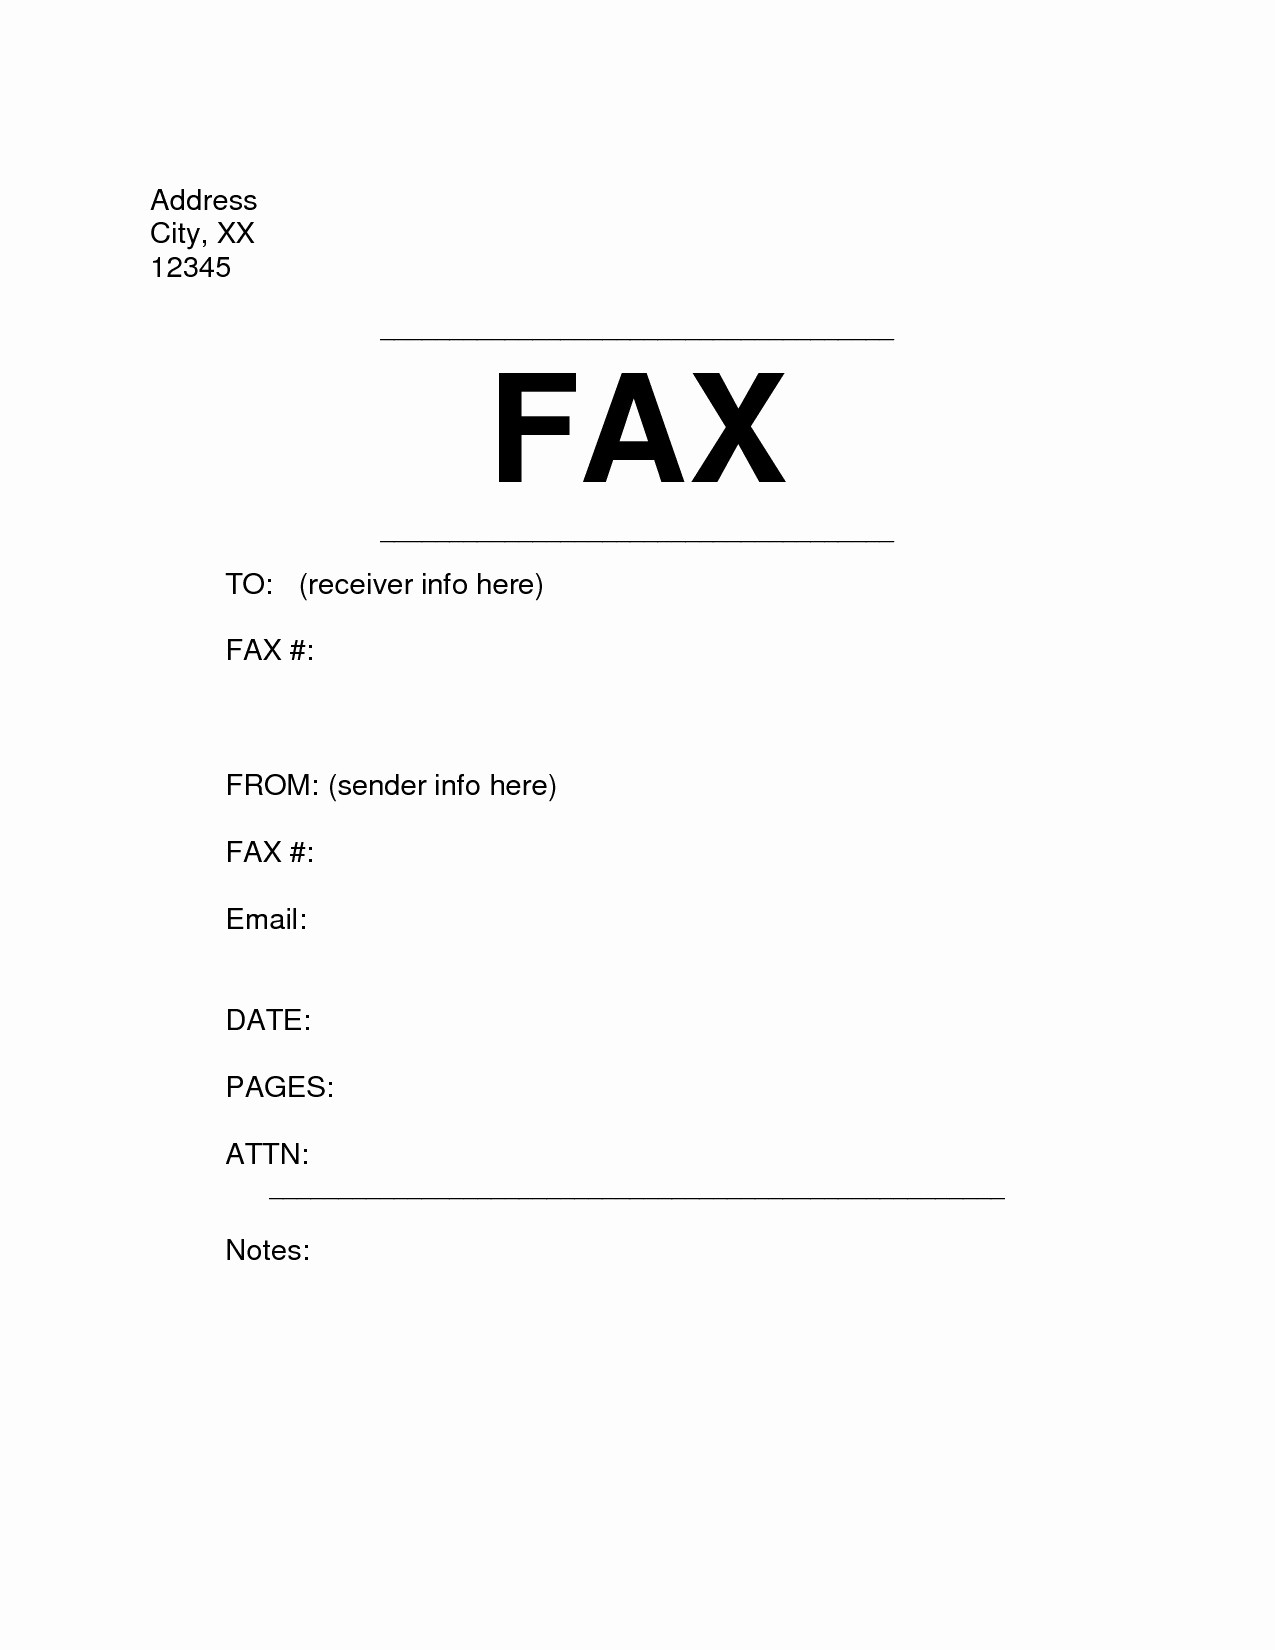 Cover Sheet for A Fax Inspirational Microsoft Fice Fax Cover Sheet Template